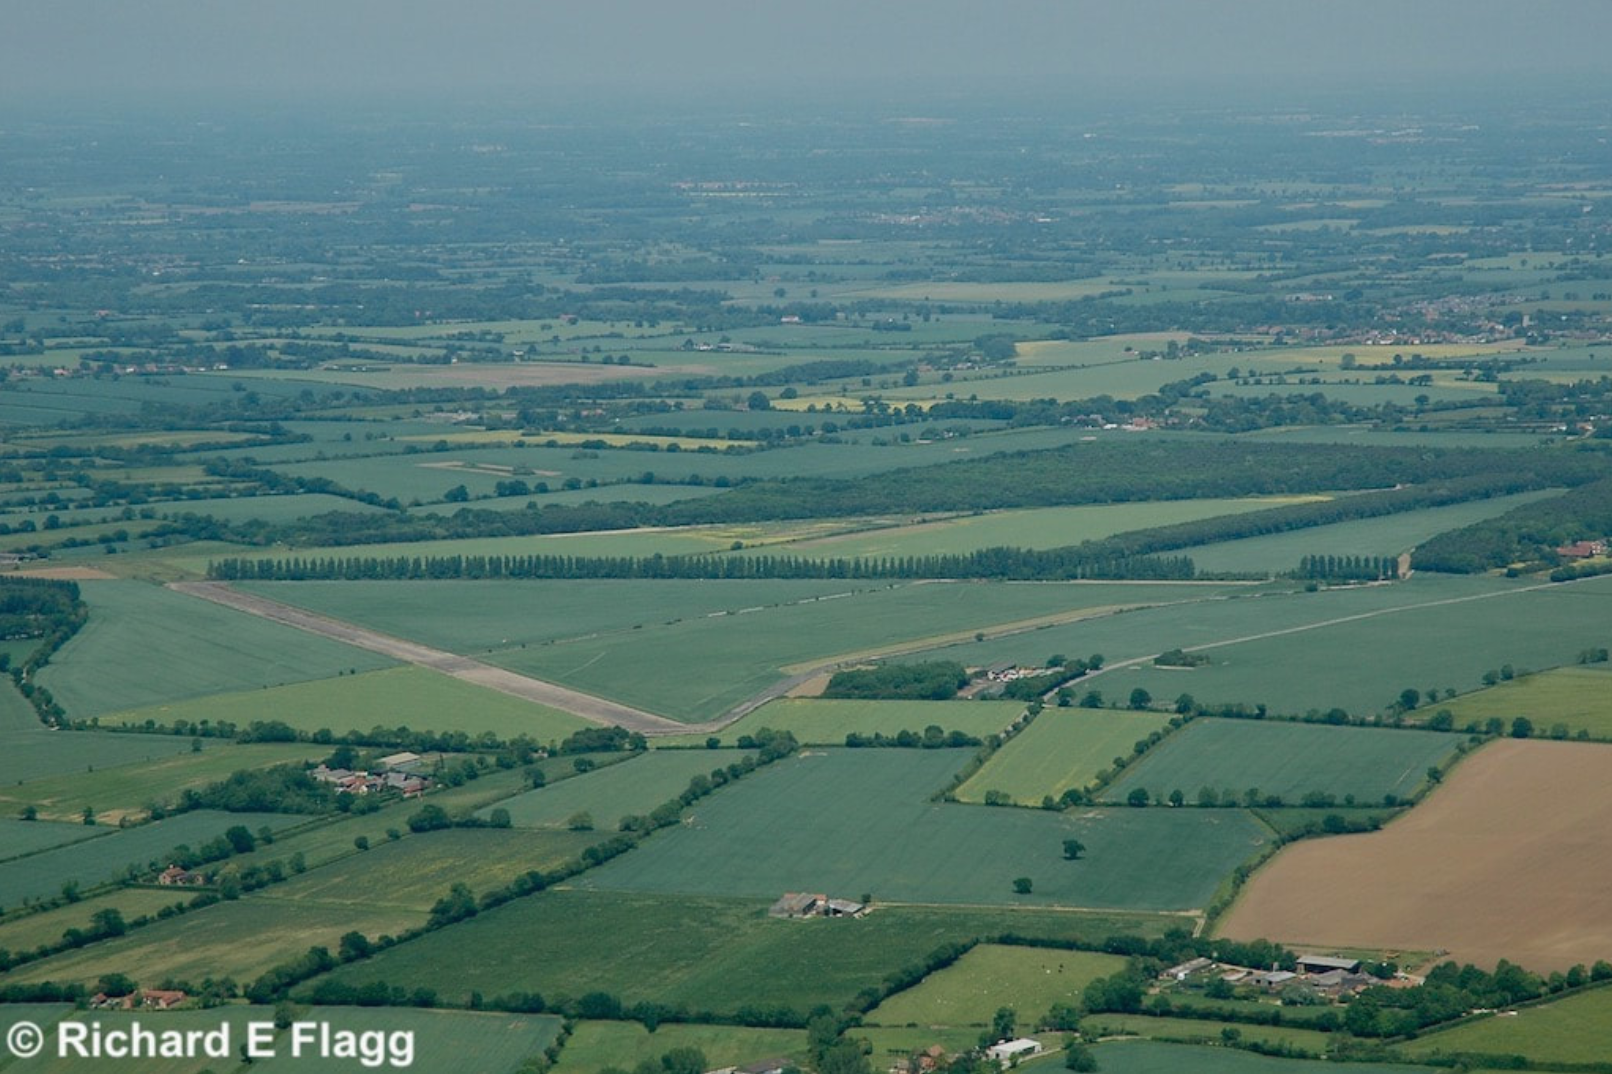 004Aerial View of RAF Hardwick Airfield - 31 May 2009.png